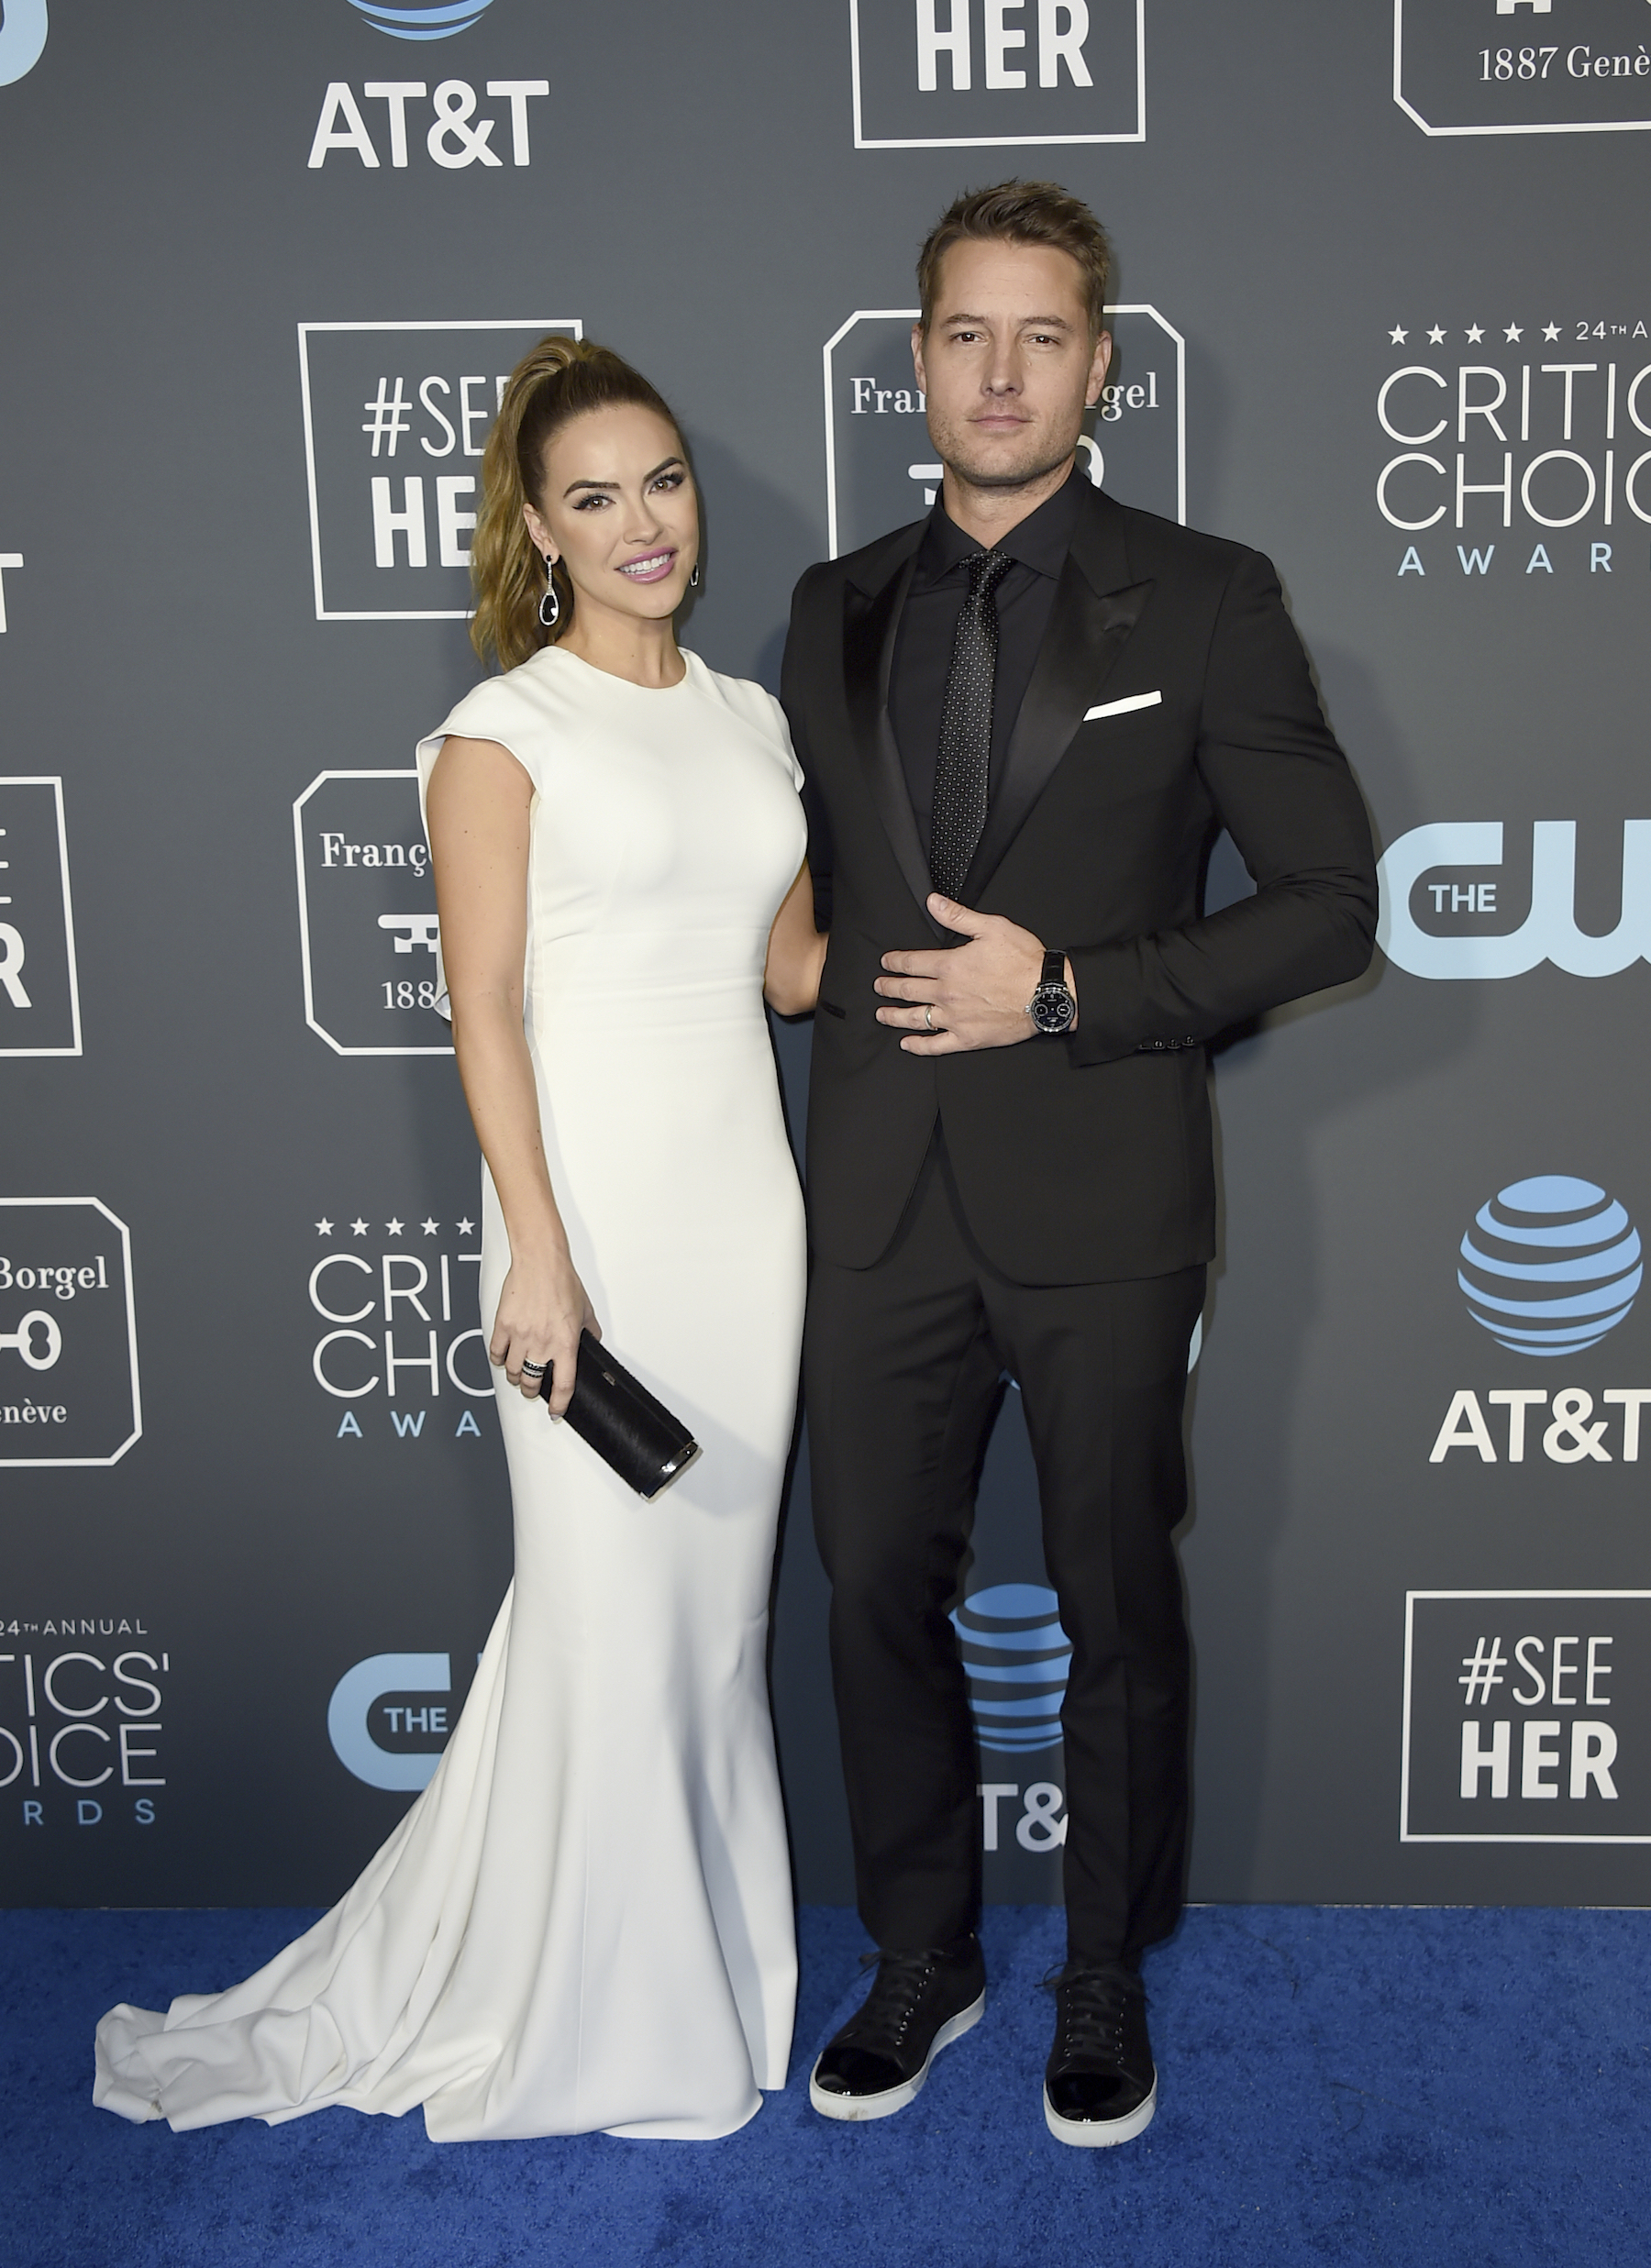 <div class='meta'><div class='origin-logo' data-origin='AP'></div><span class='caption-text' data-credit='Jordan Strauss/Invision/AP'>Justin Hartley, right, and Chrishell Stause arrive at the 24th annual Critics' Choice Awards on Sunday, Jan. 13, 2019, at the Barker Hangar in Santa Monica, Calif.</span></div>